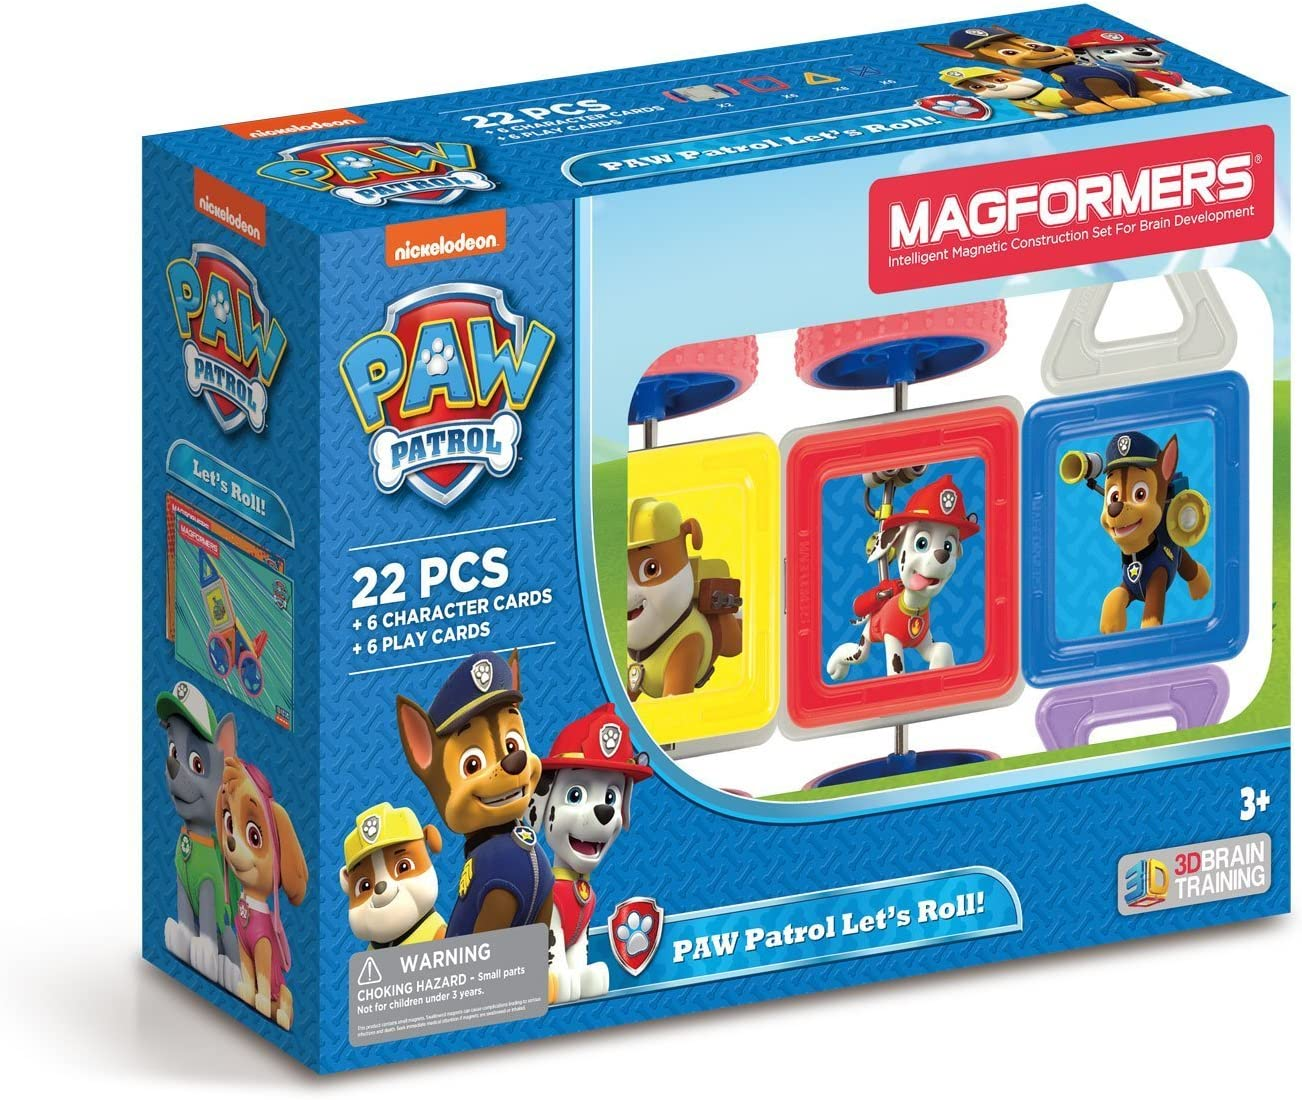 Amazon Com Magformers Paw Patrol 22 Pieces Let S Roll Rainbow Colors Educational Magnetic Geometric Shapes Tiles Building Stem Toy Set Ages 3 Toys Games